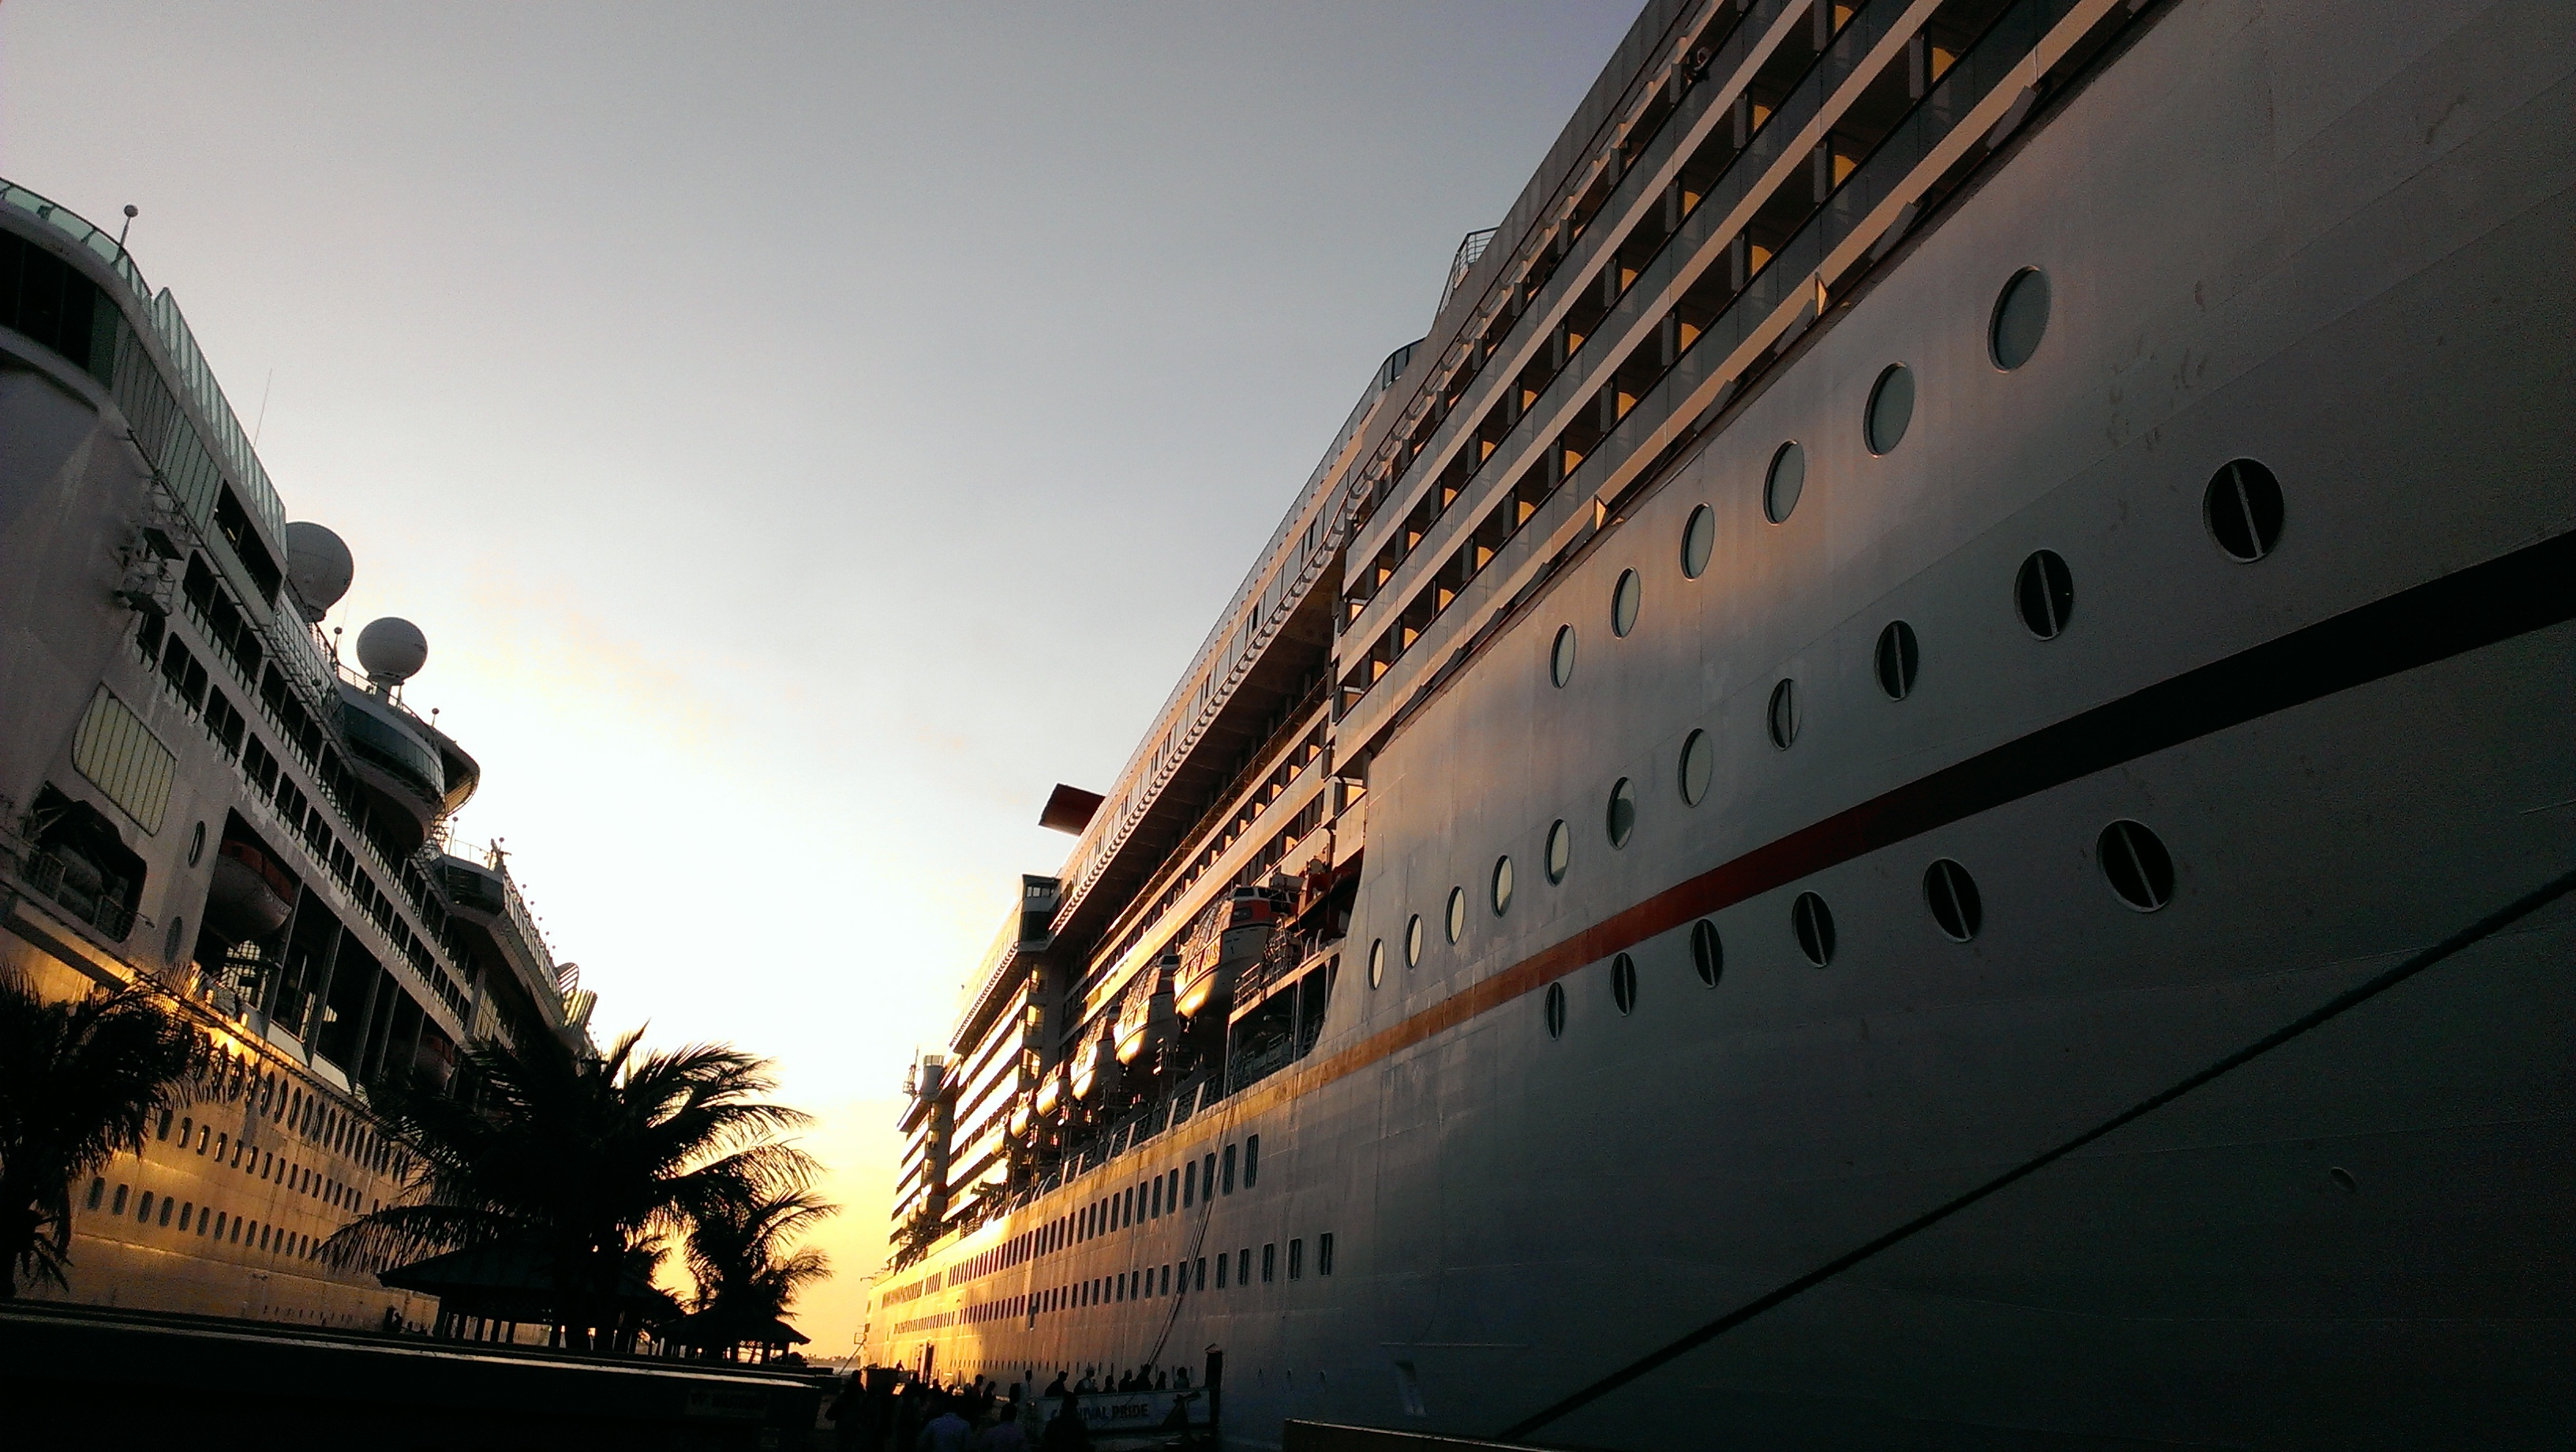 Cruise, Boat, Giant, Port, Ship, HQ Photo